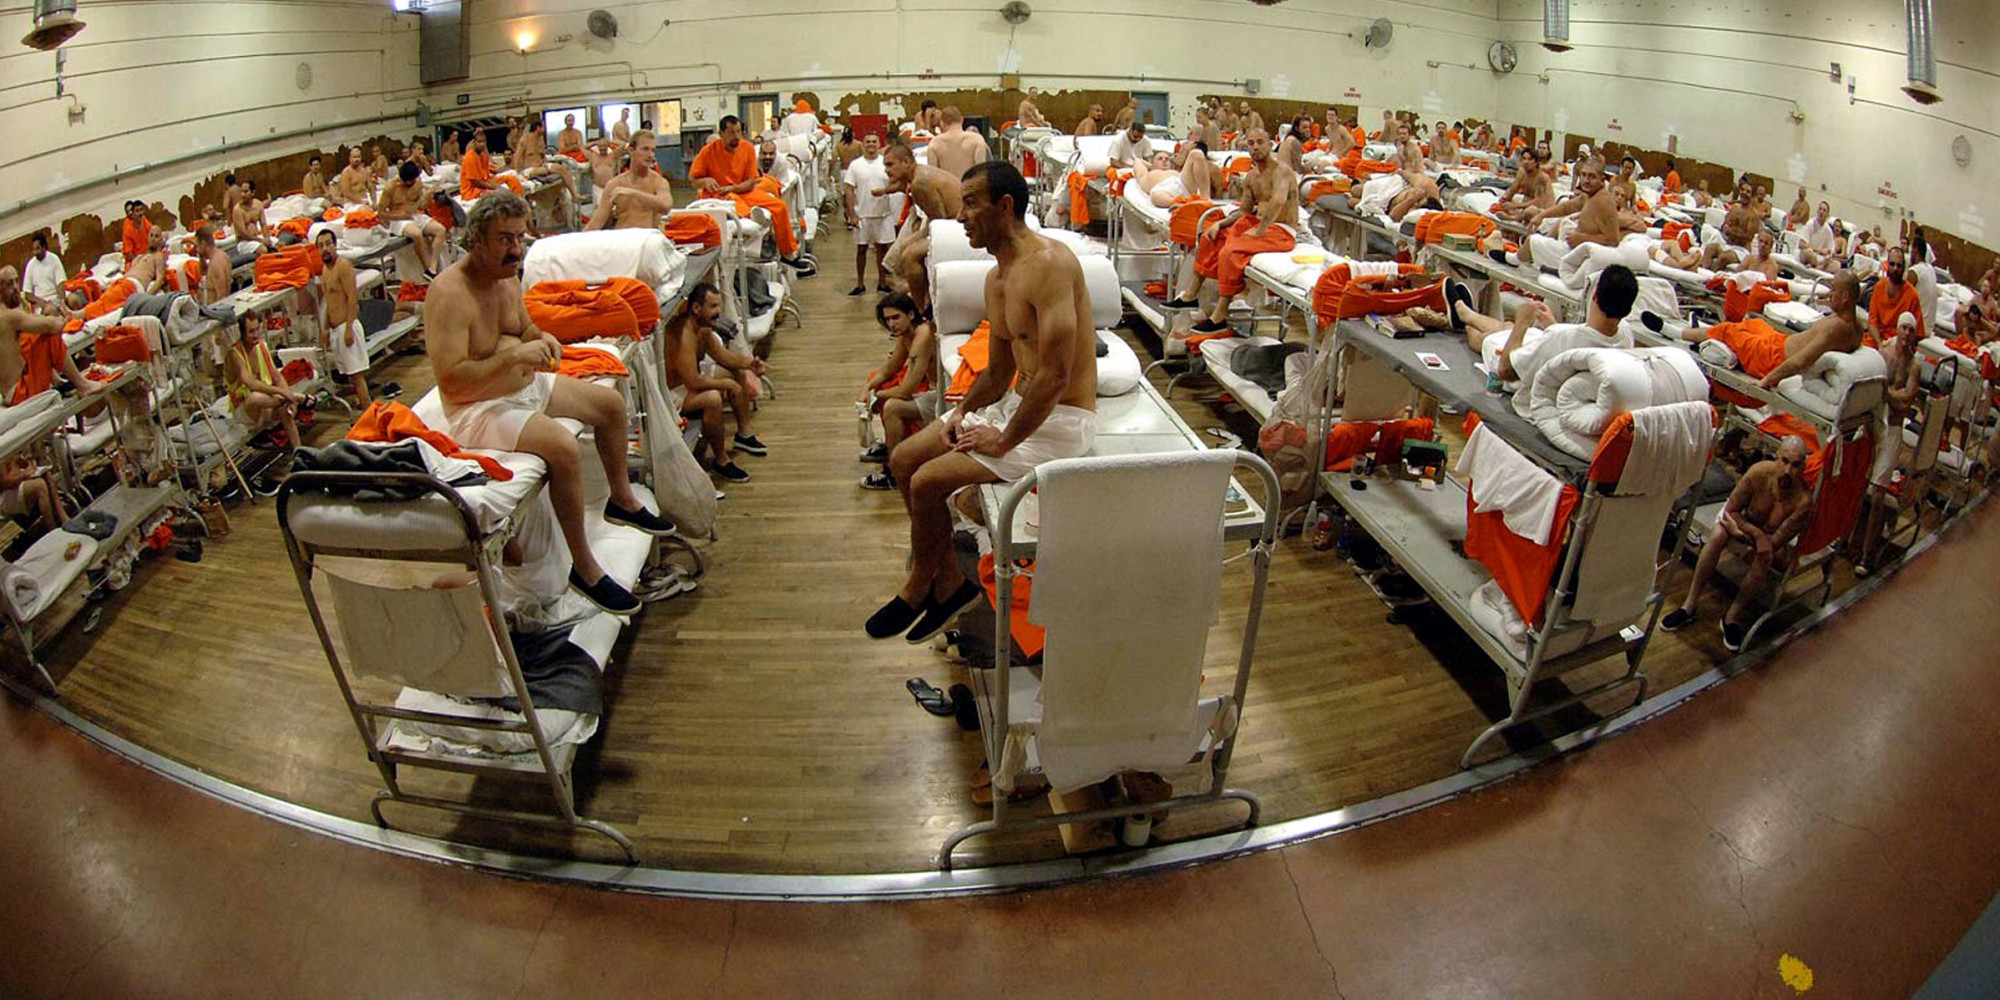 Ab 109 Are State Inmates Really Better Off In County